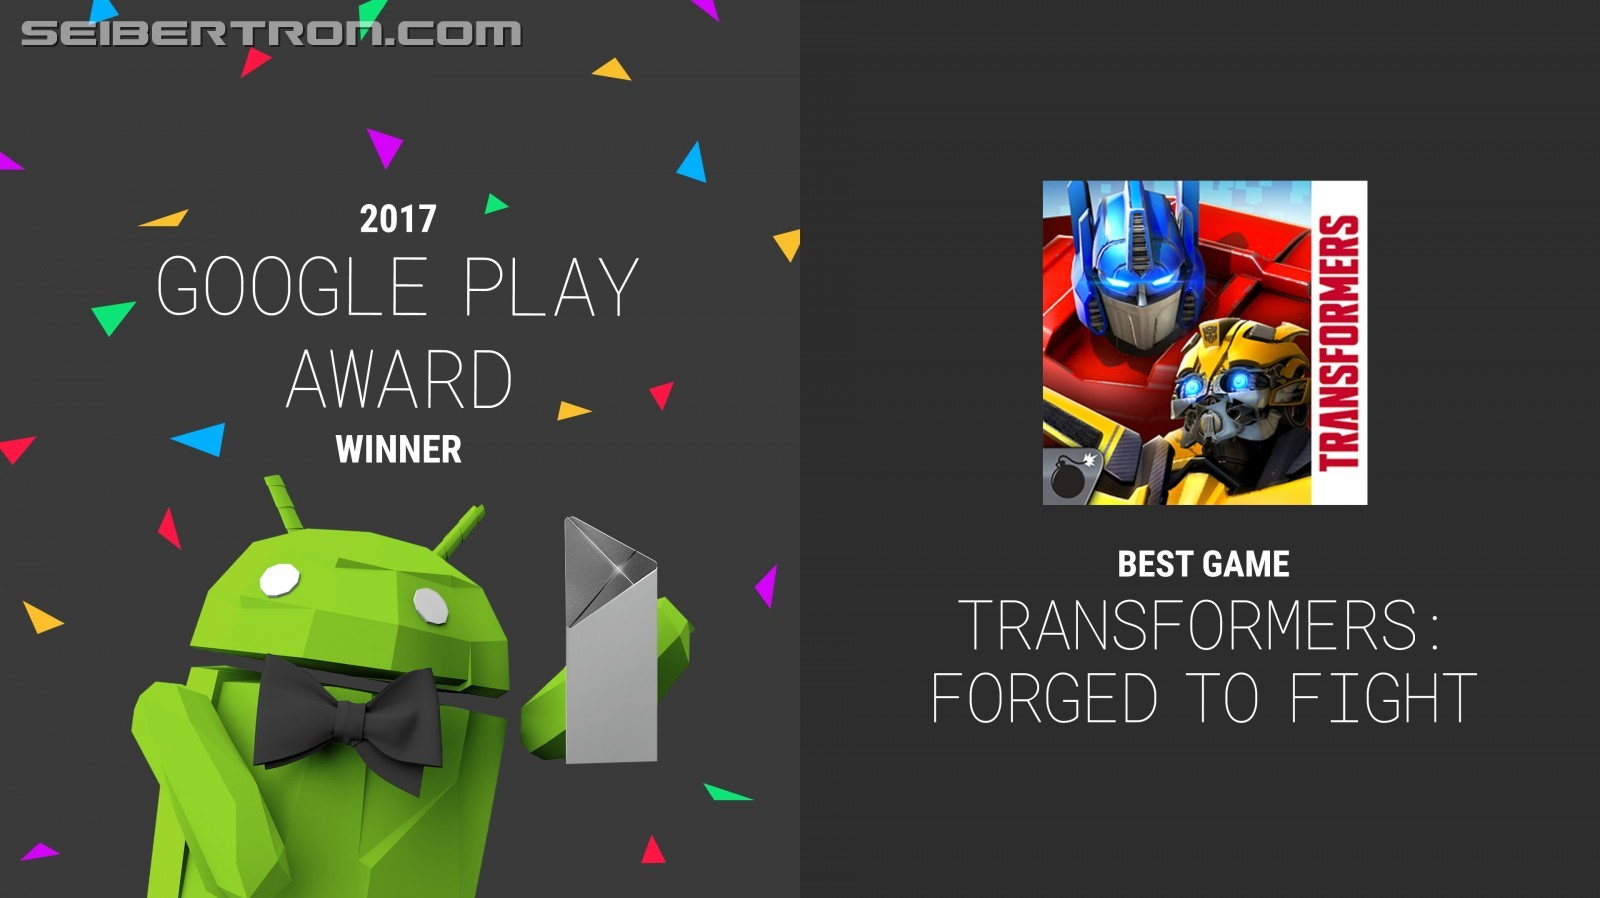 Transformers News: Official press Release on Kabam's Transformers: Forged to Fight Winning Best Game